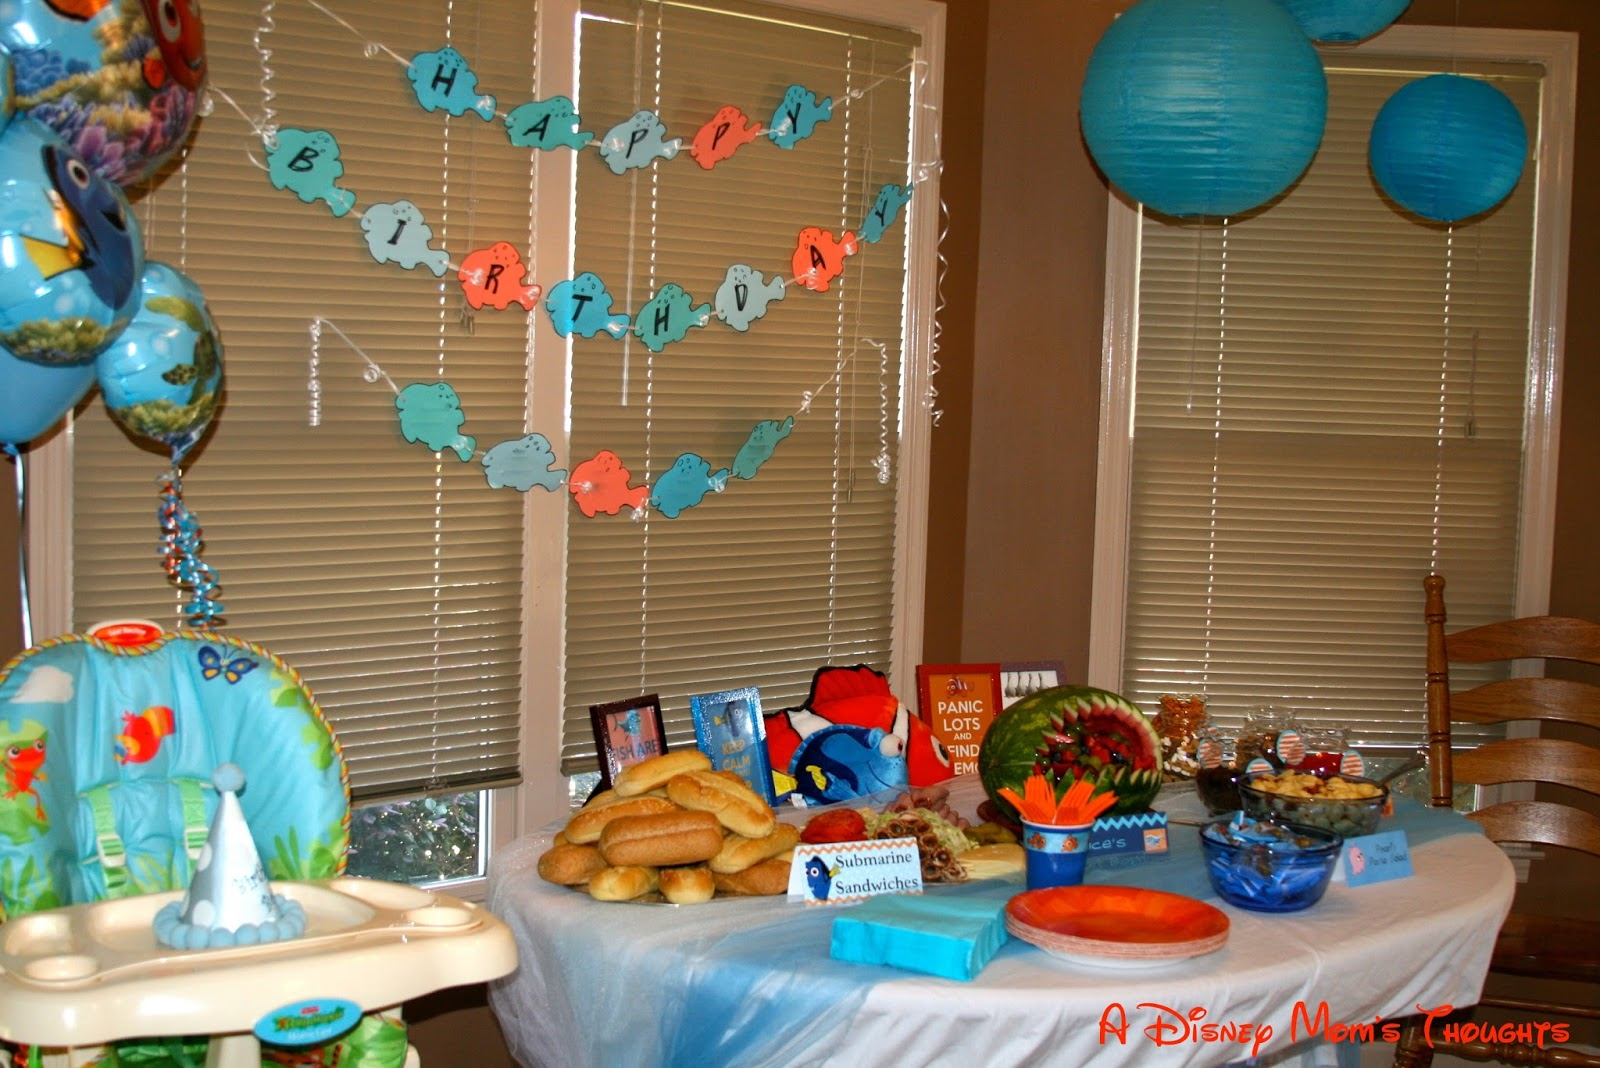 Finding nemo first birthday decorations a disney mom 39 s for 1st birthday decoration pictures